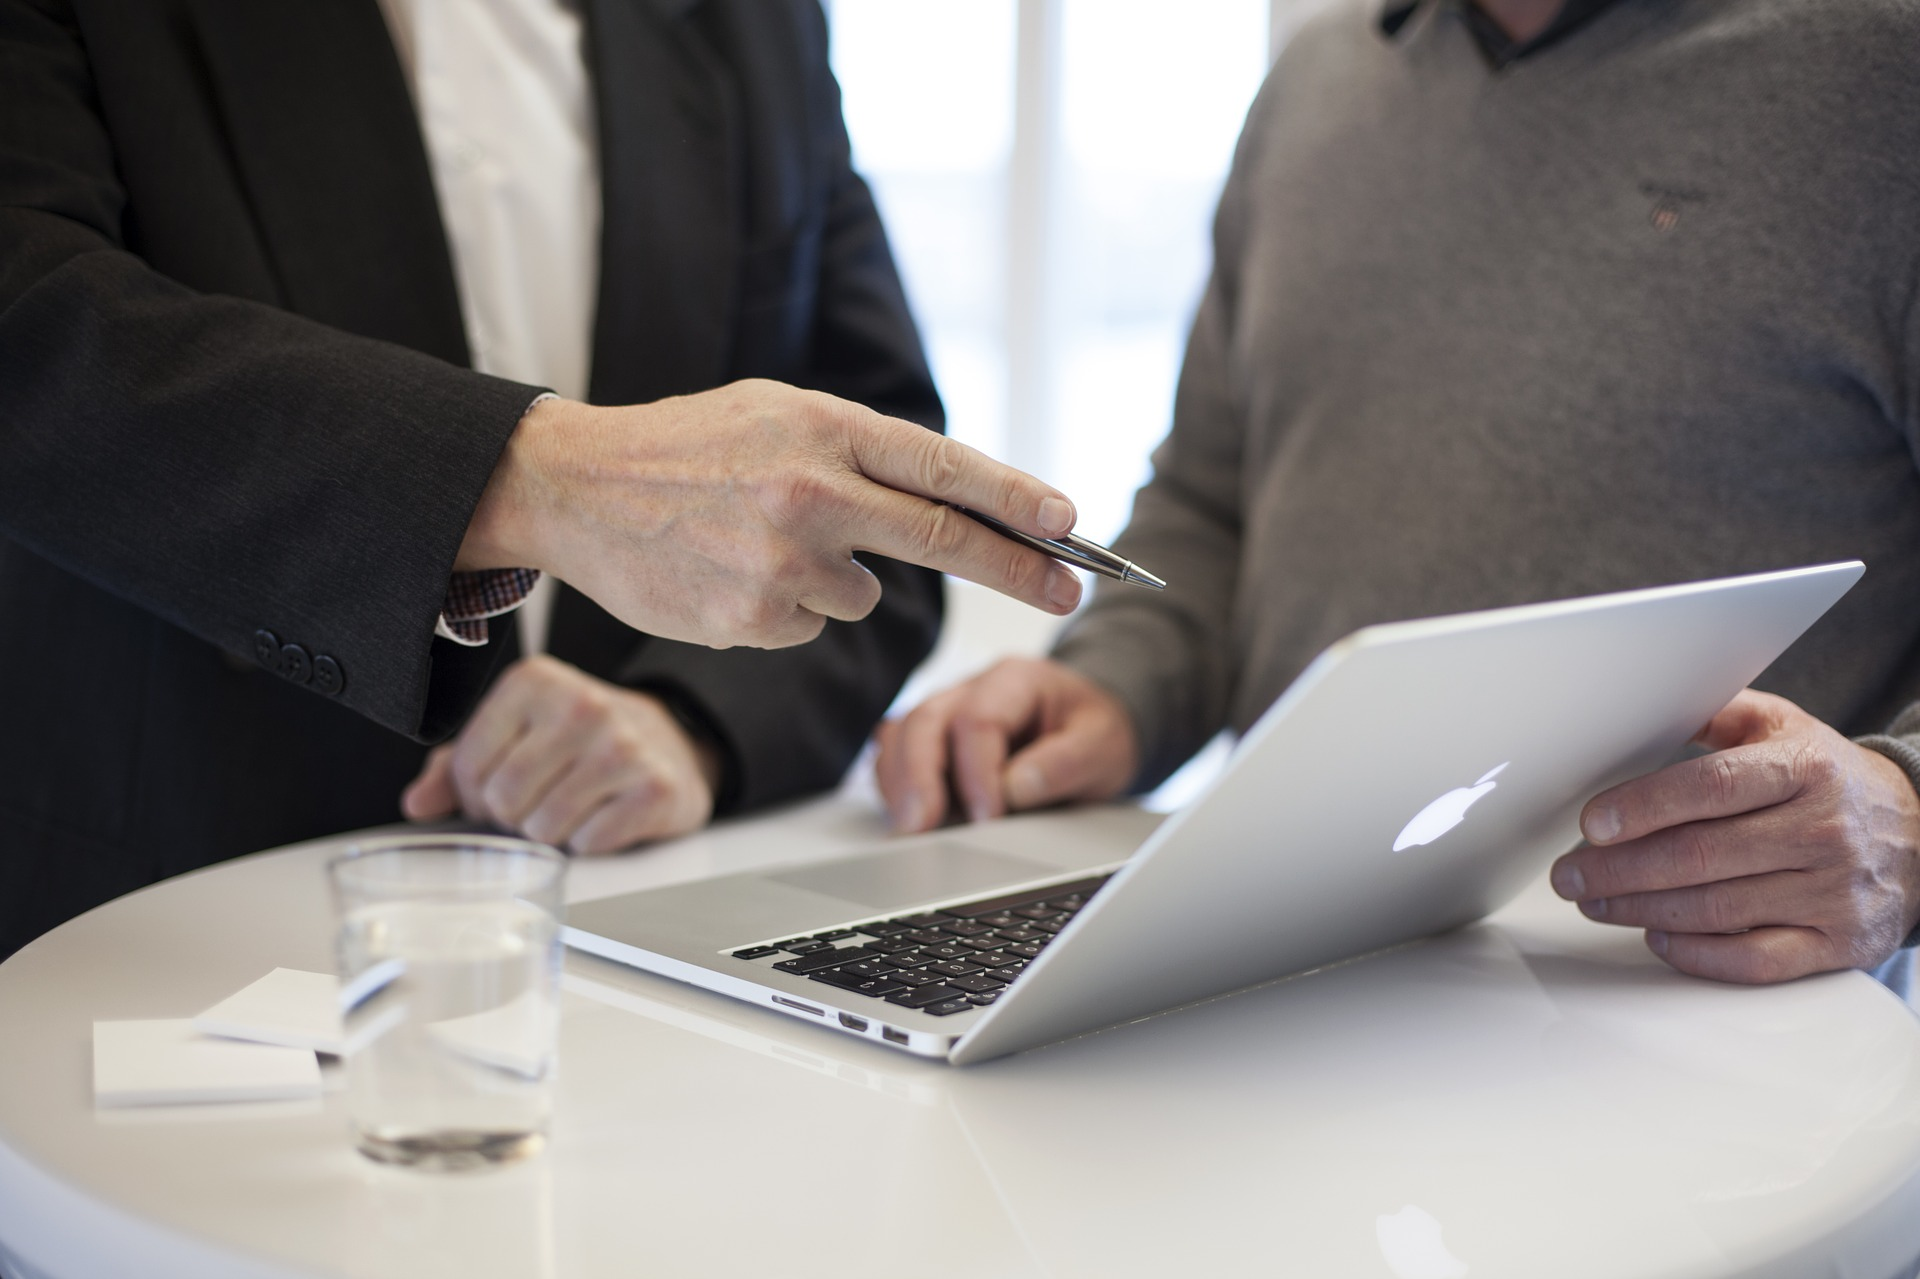 Image of table, laptop, and 2 people. One is a consultant. Image Credit: Pixabay. Toronto real estate agents